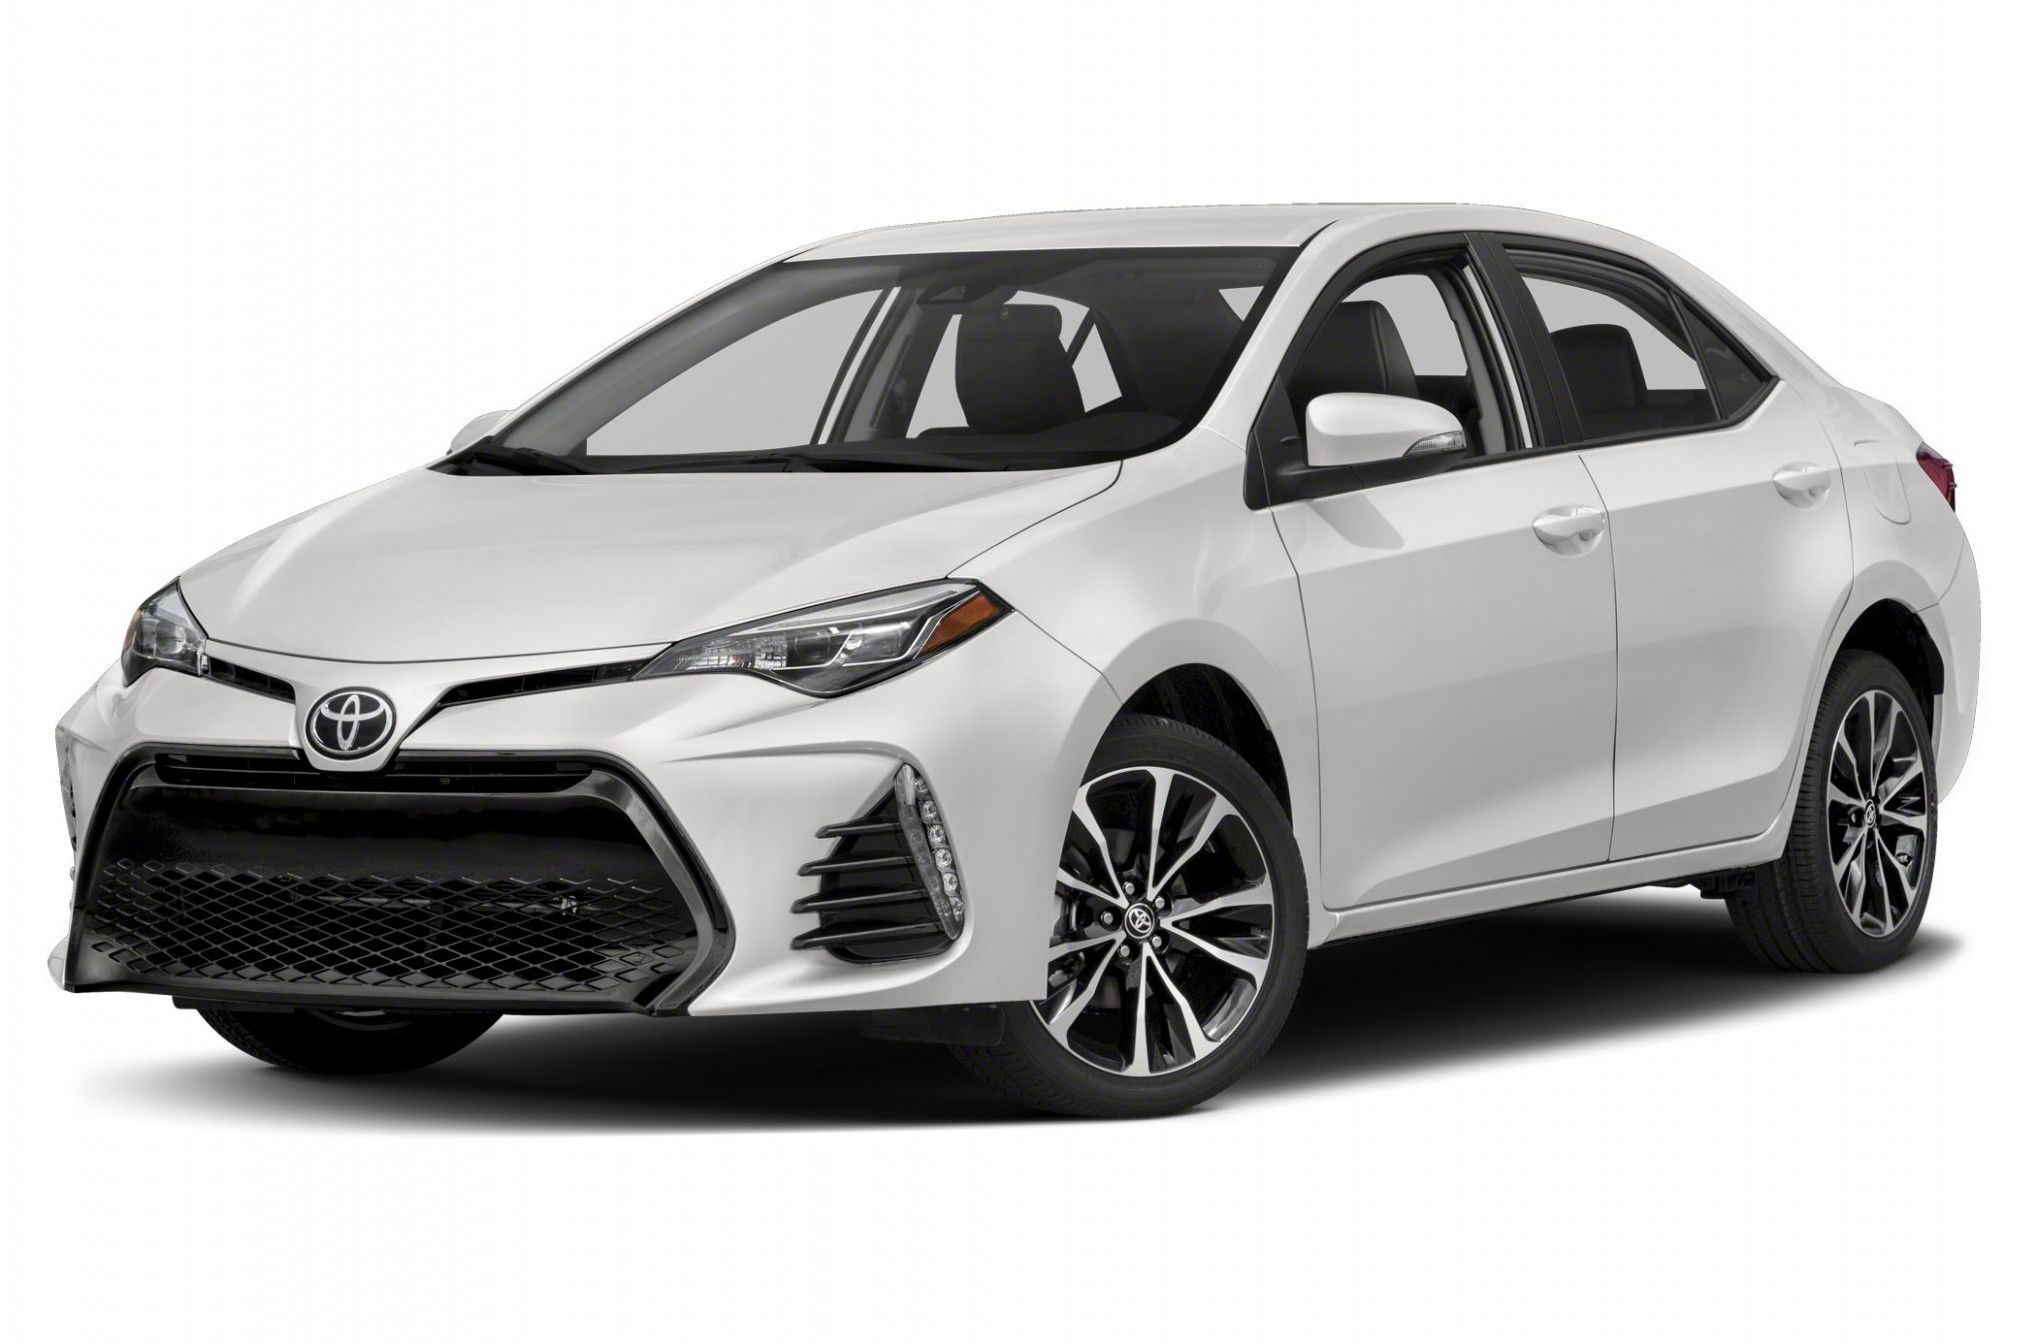 Toyota Corolla Cost In 2020 Toyota Corolla Toyota Toyota Camry For Sale